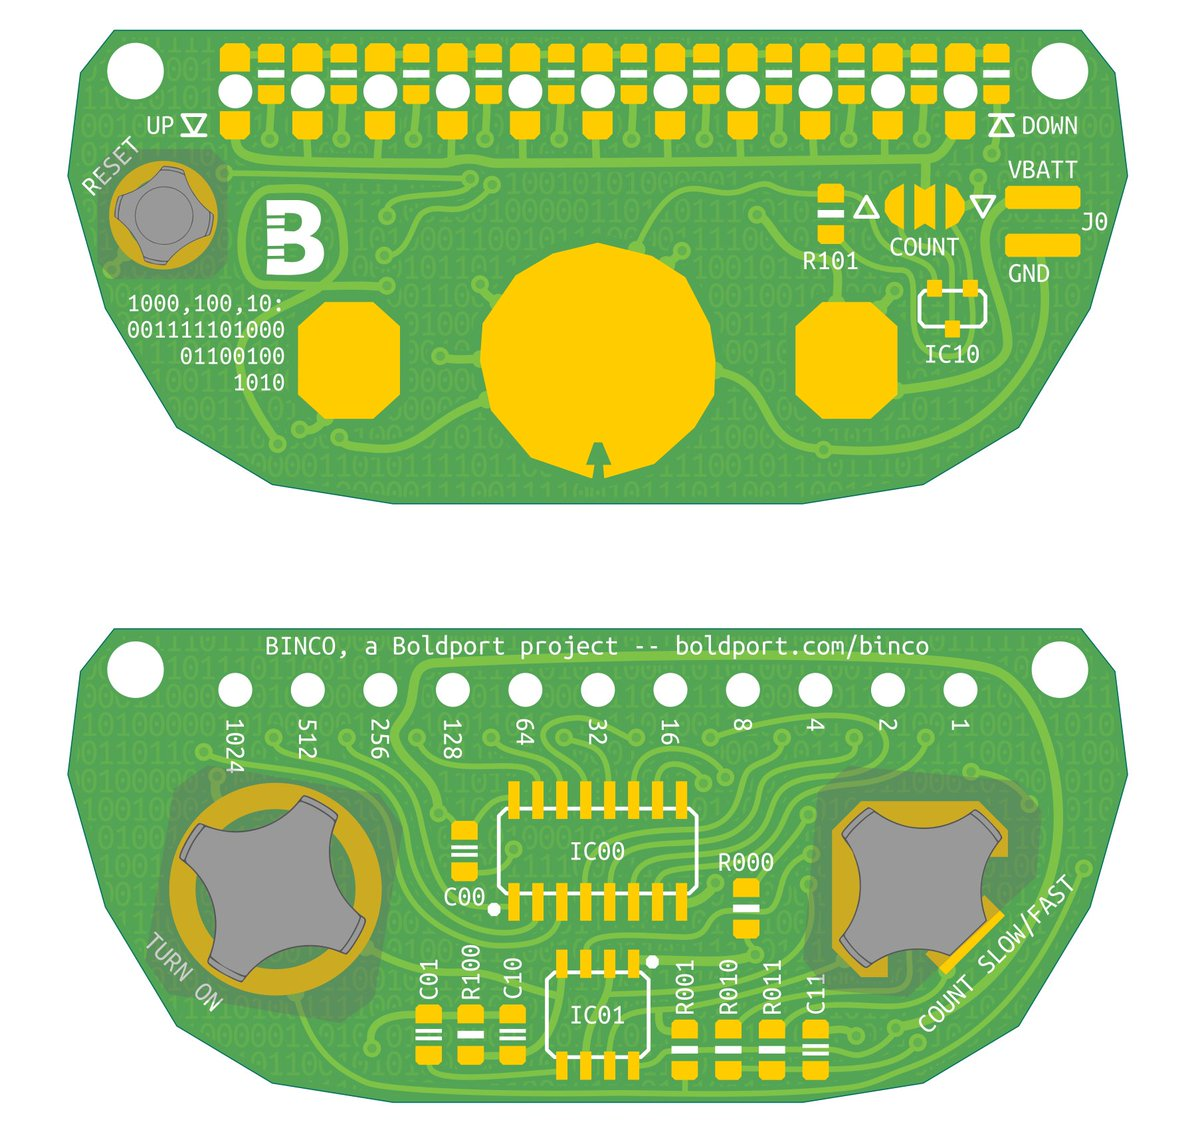 Creating an infographic on how to apply the @Snaptron domes to #BoldportClub BINCO